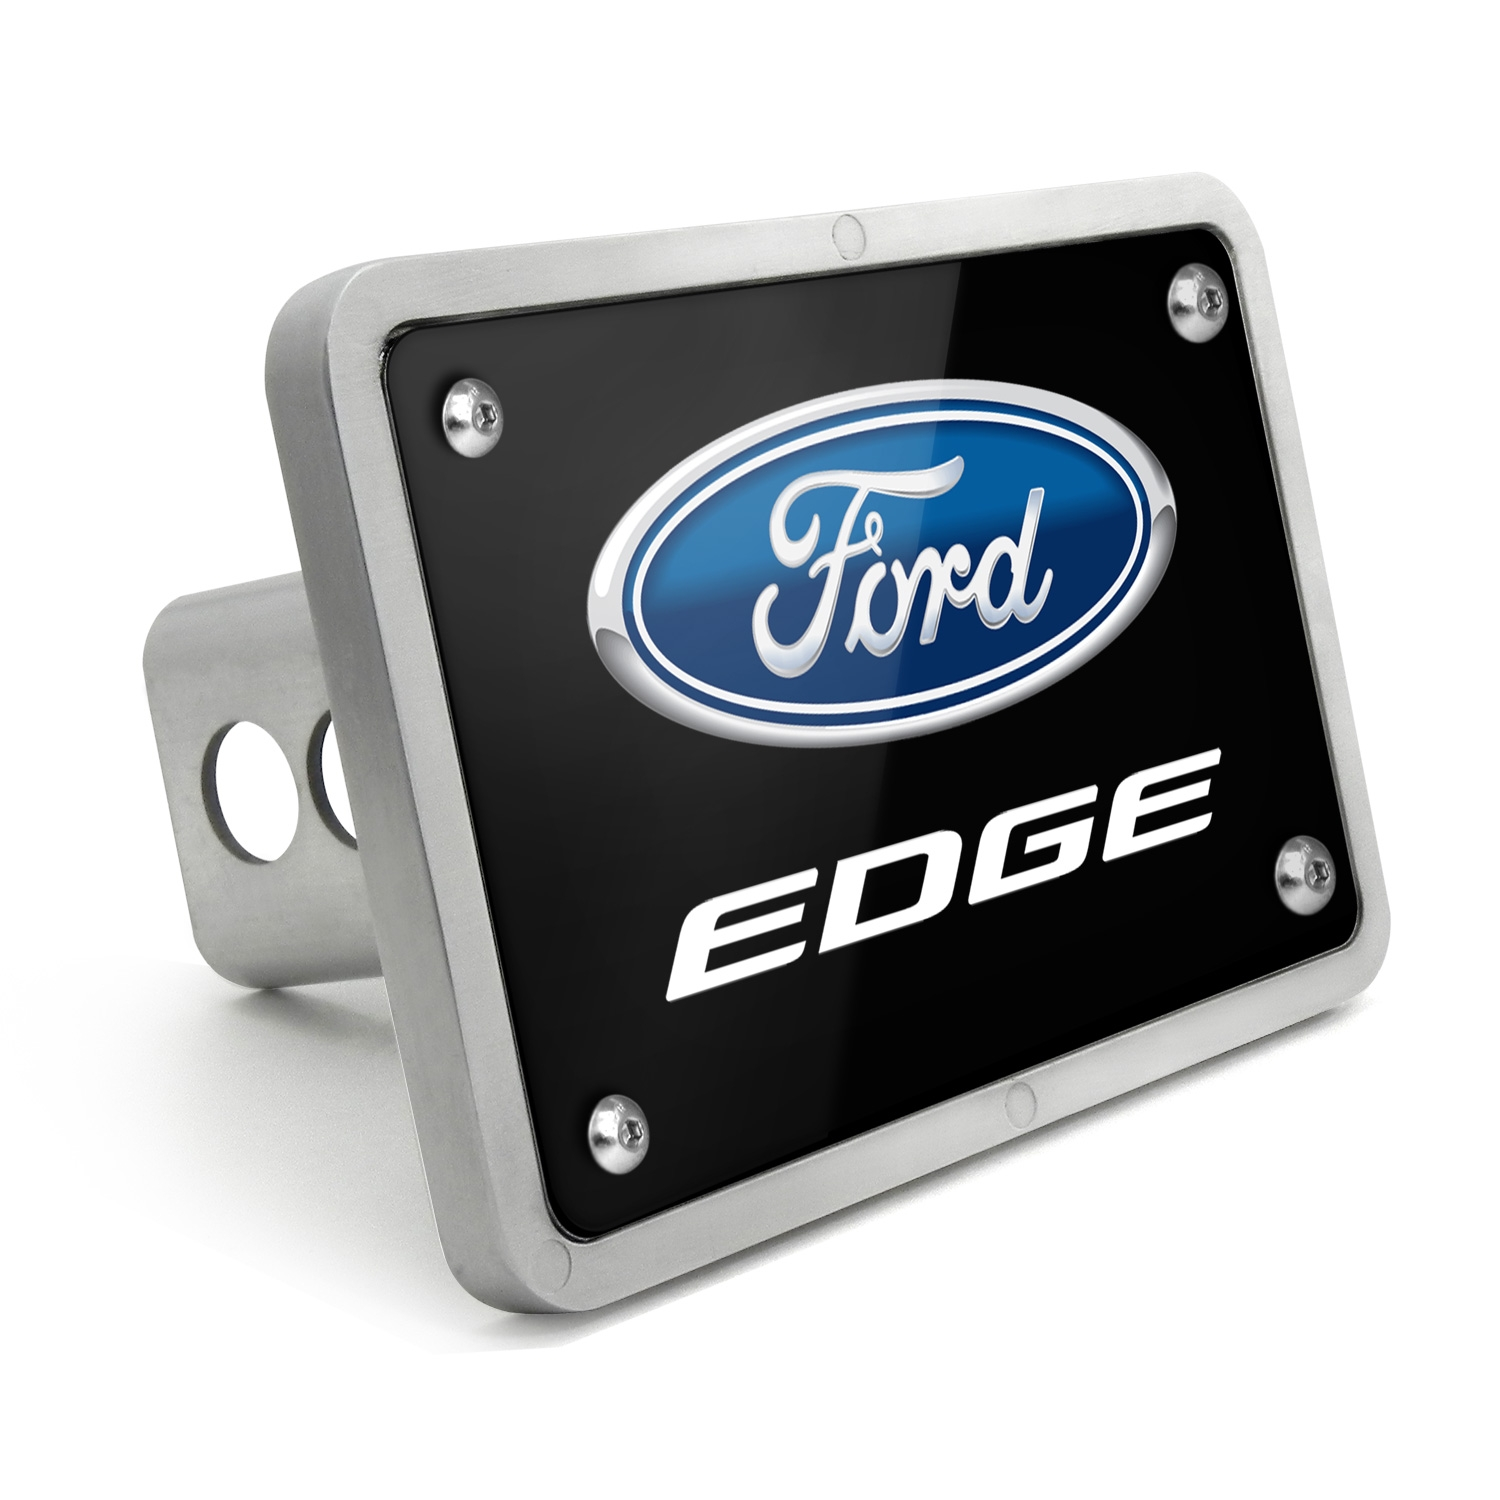 Ford Edge UV Graphic Black Plate Billet Aluminum 2 inch Tow Hitch Cover